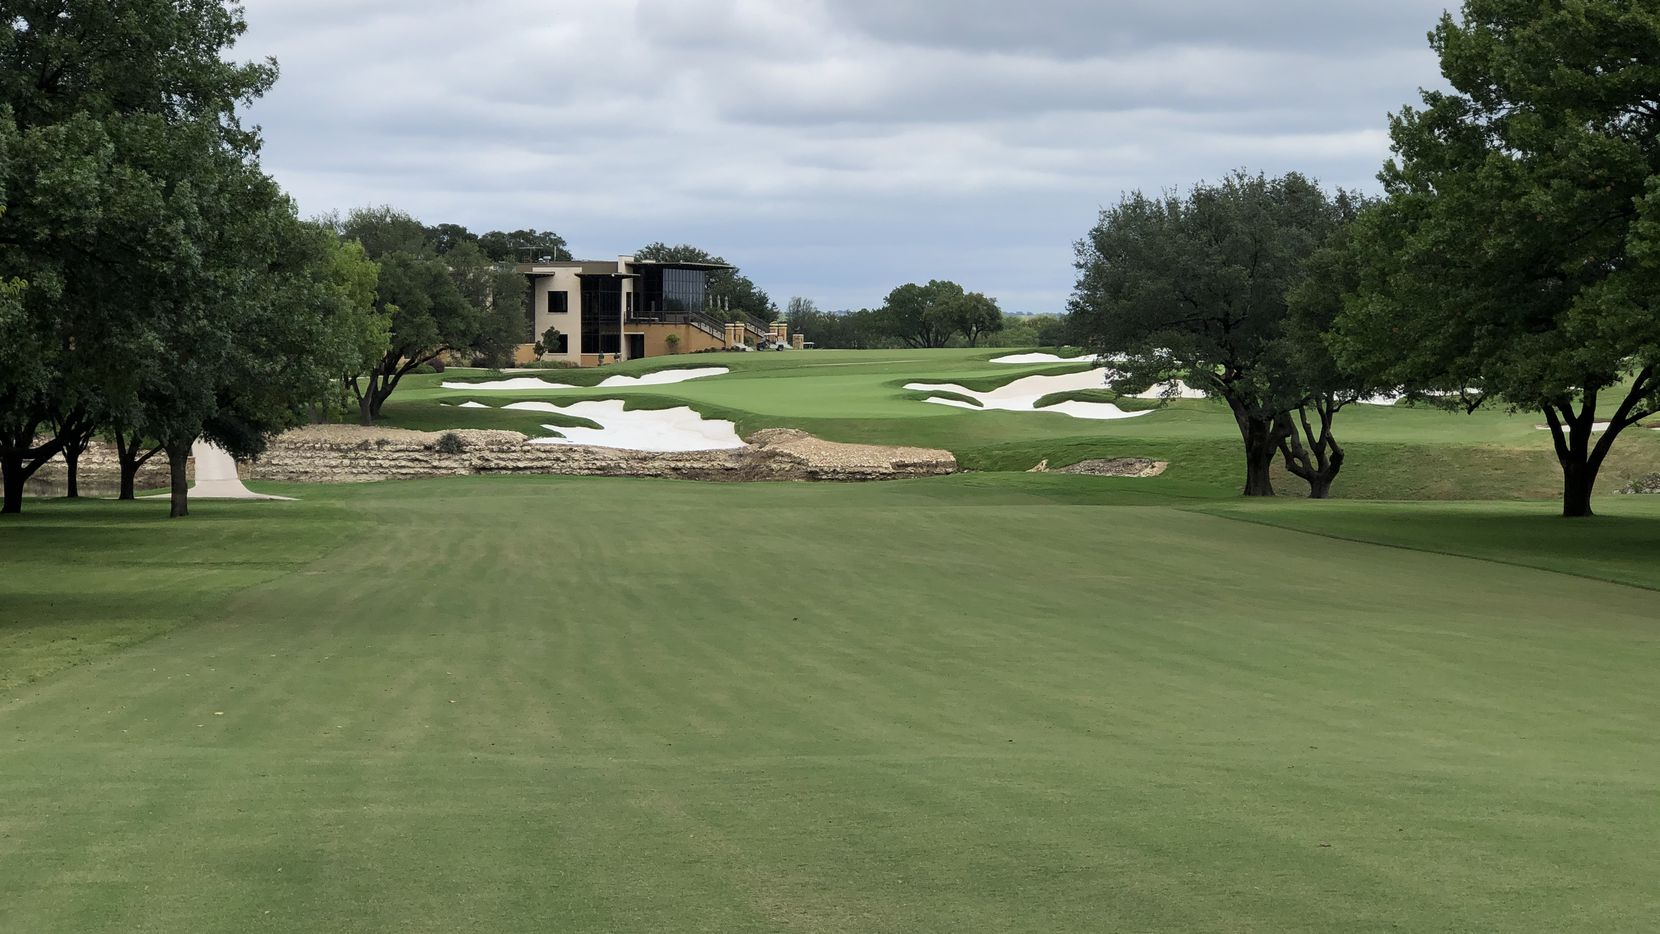 No. 18 at Shady Oaks CC in Fort Worth features a double green with a stream in front and bright white sand protecting the putting surface. The golf course will reopen on Oct. 1, 2020, after an $11 million renovation by an Australian team led by former U.S. Open champion Geoff Ogilvy.